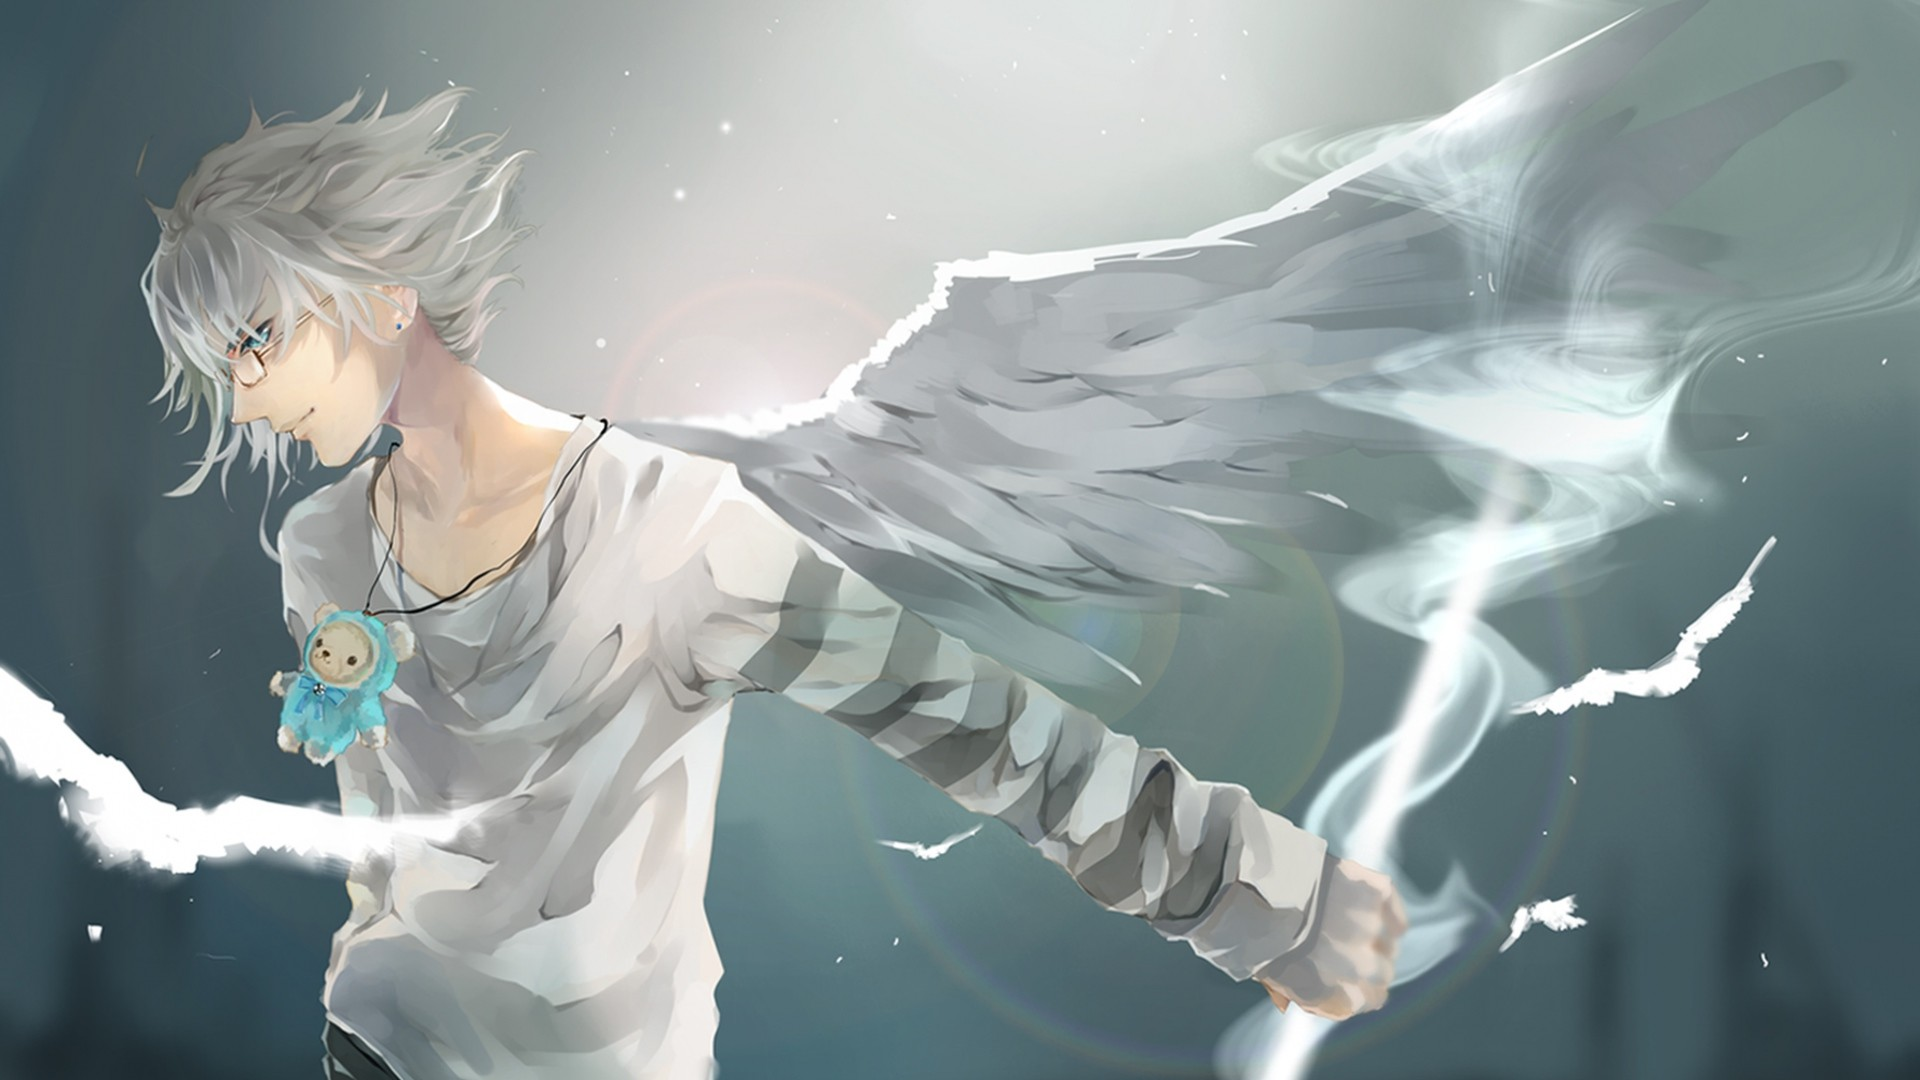 anime cool guy wallpaper 58 images